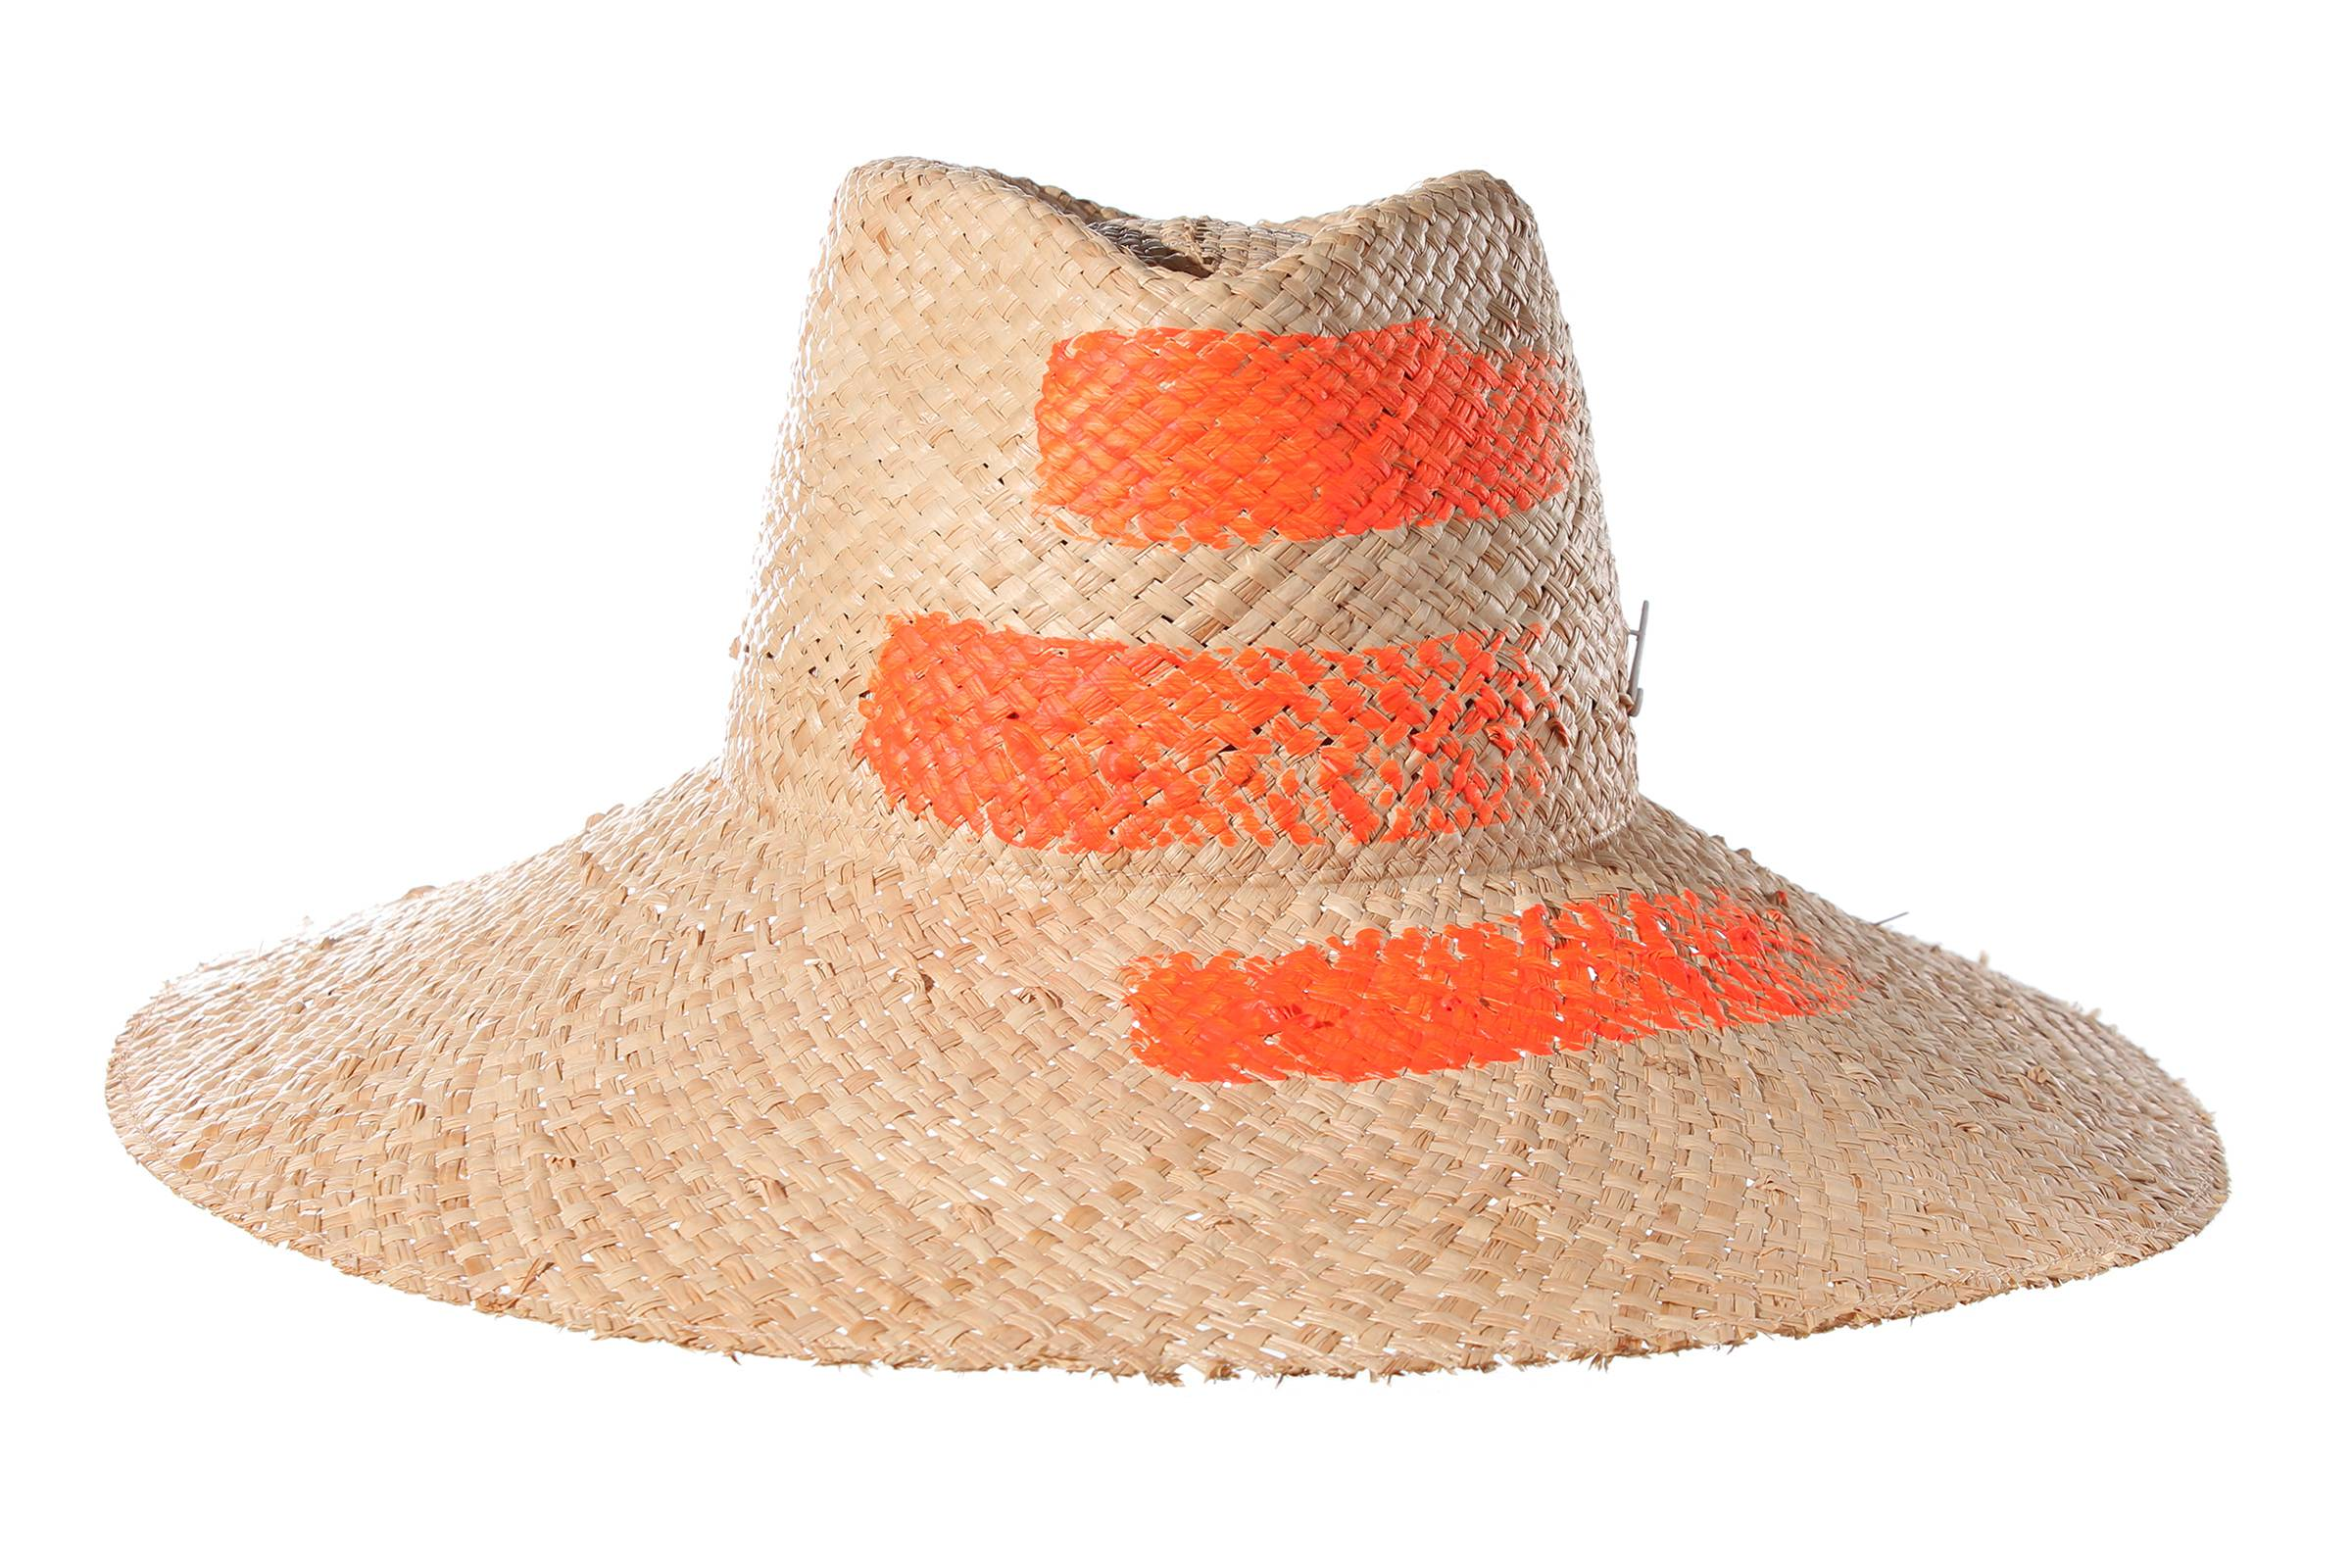 cloche ART FAY raffia straw